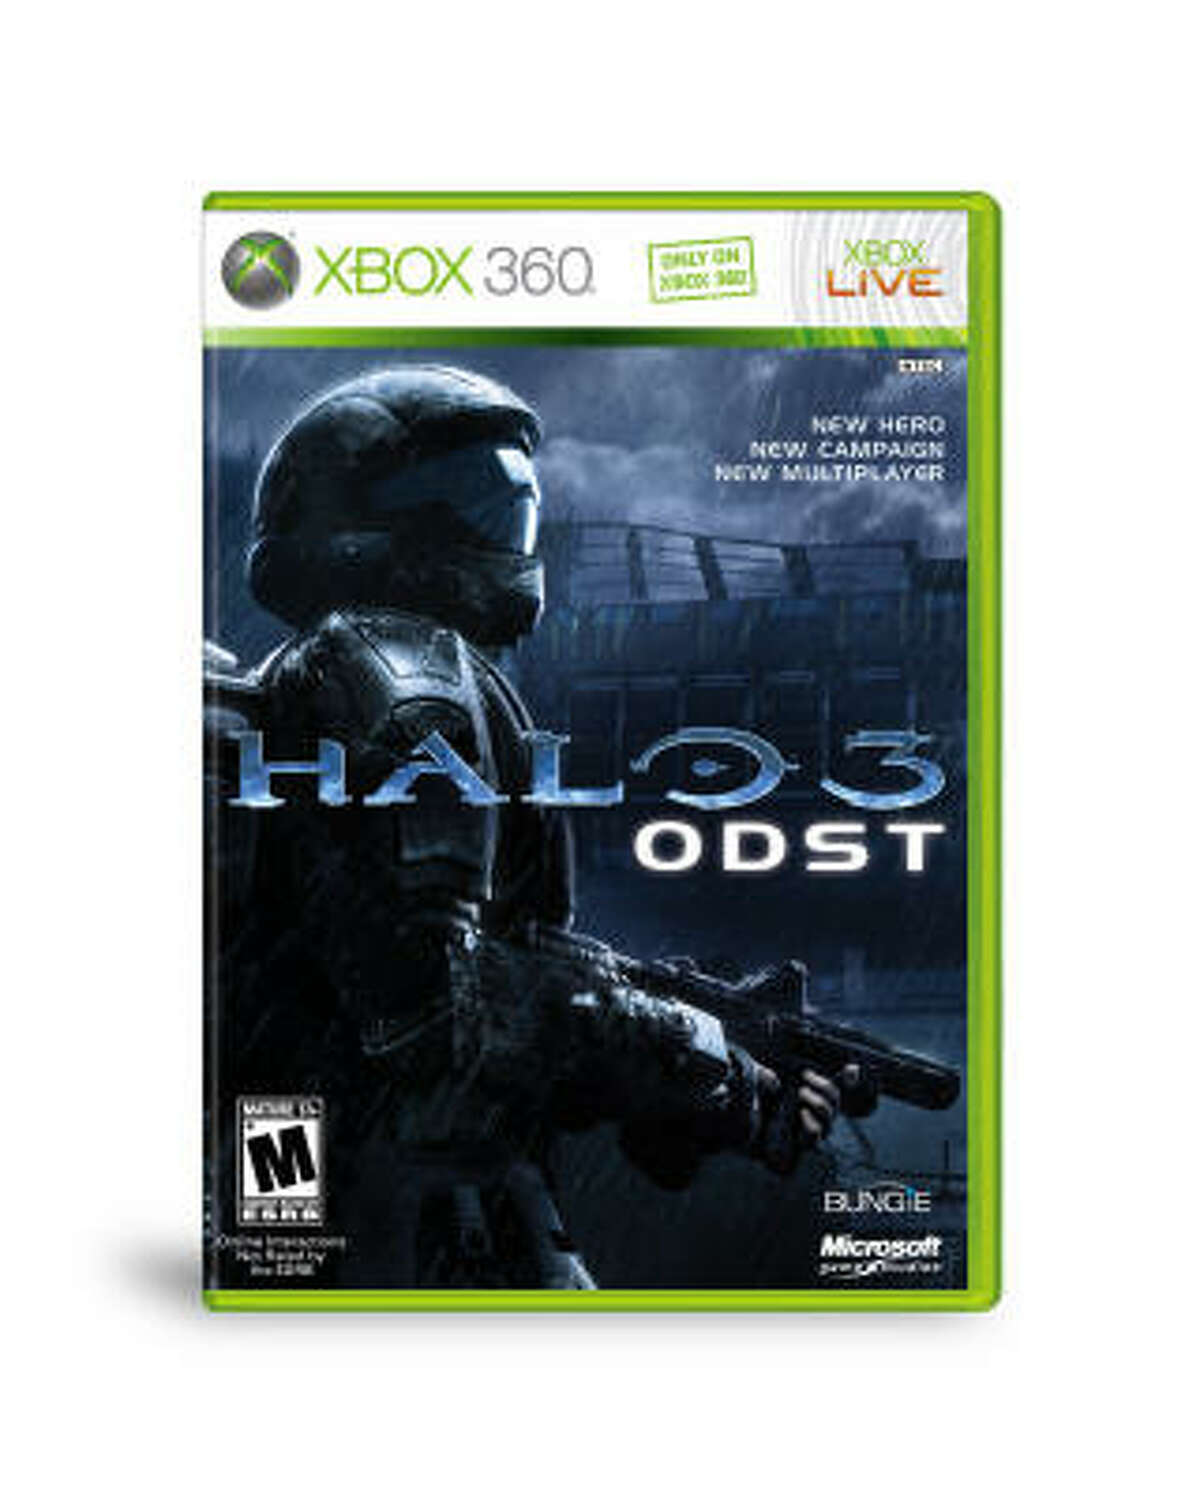 Halo 3: ODST Microsoft; Rated M for Mature; $59.99 Bungie's latest hit is more than an expansion. Though the game includes all of the Halo 3 multiplayer maps (all of the downloadable ones on Xbox LIVE), the single-player campaign is stellar and is on par with the original Halo: Combat Evolved story and plot. The firefight mode, online or offline, is worth the price of admission.